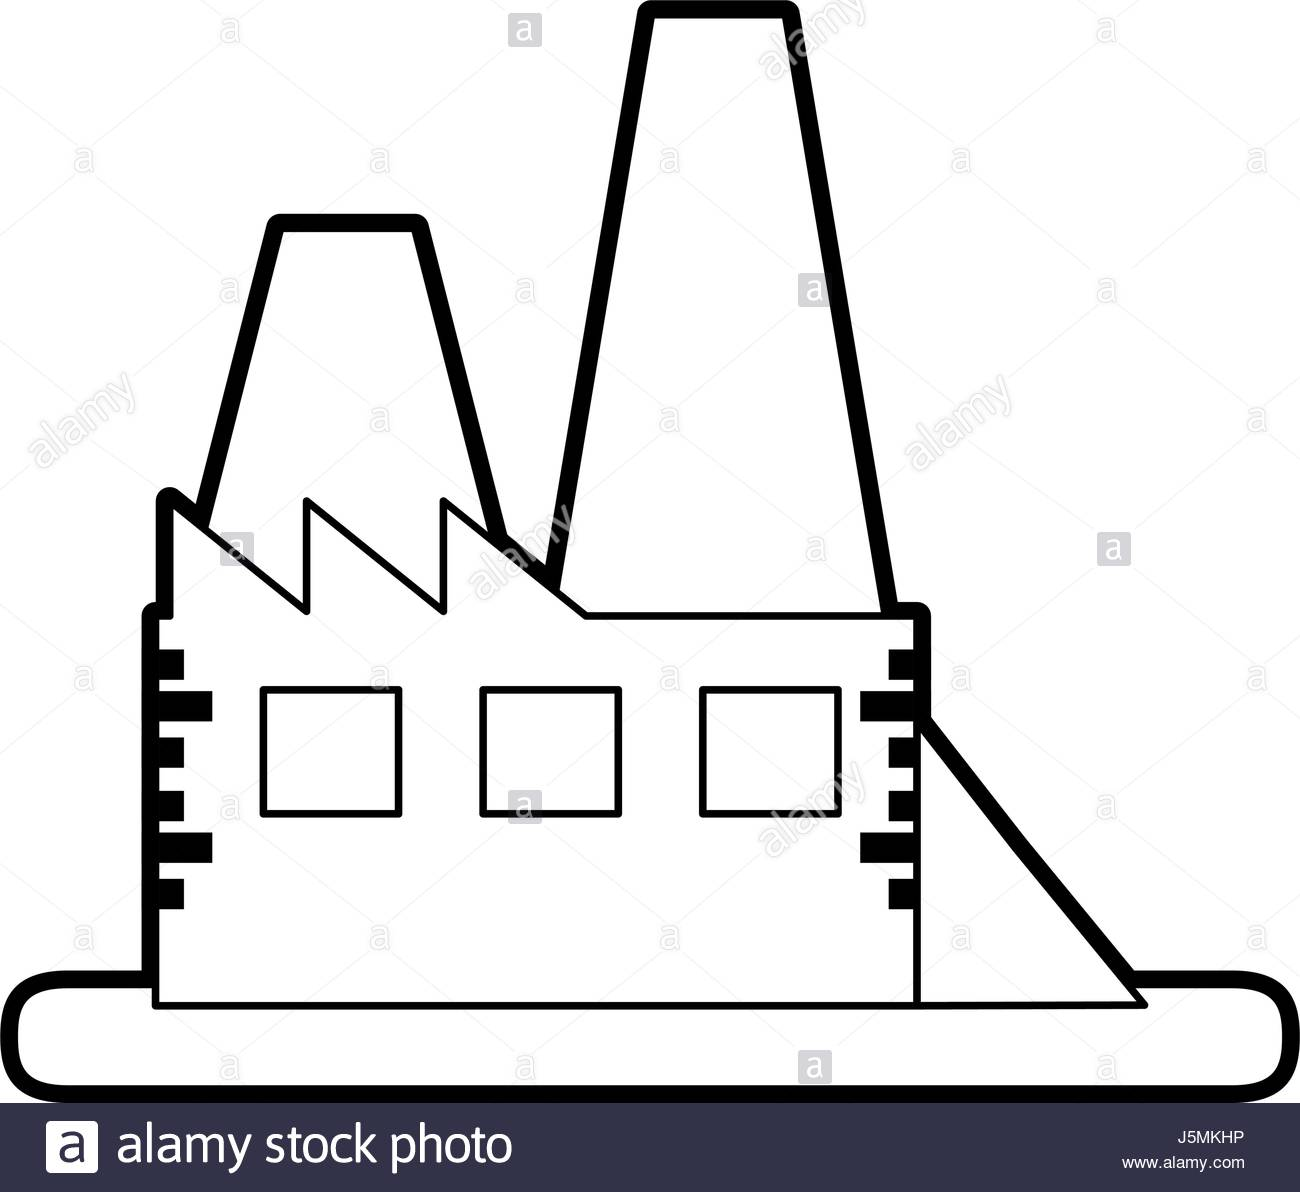 1300x1192 Sketch Silhouette Image Building Industrial Factory Stock Vector